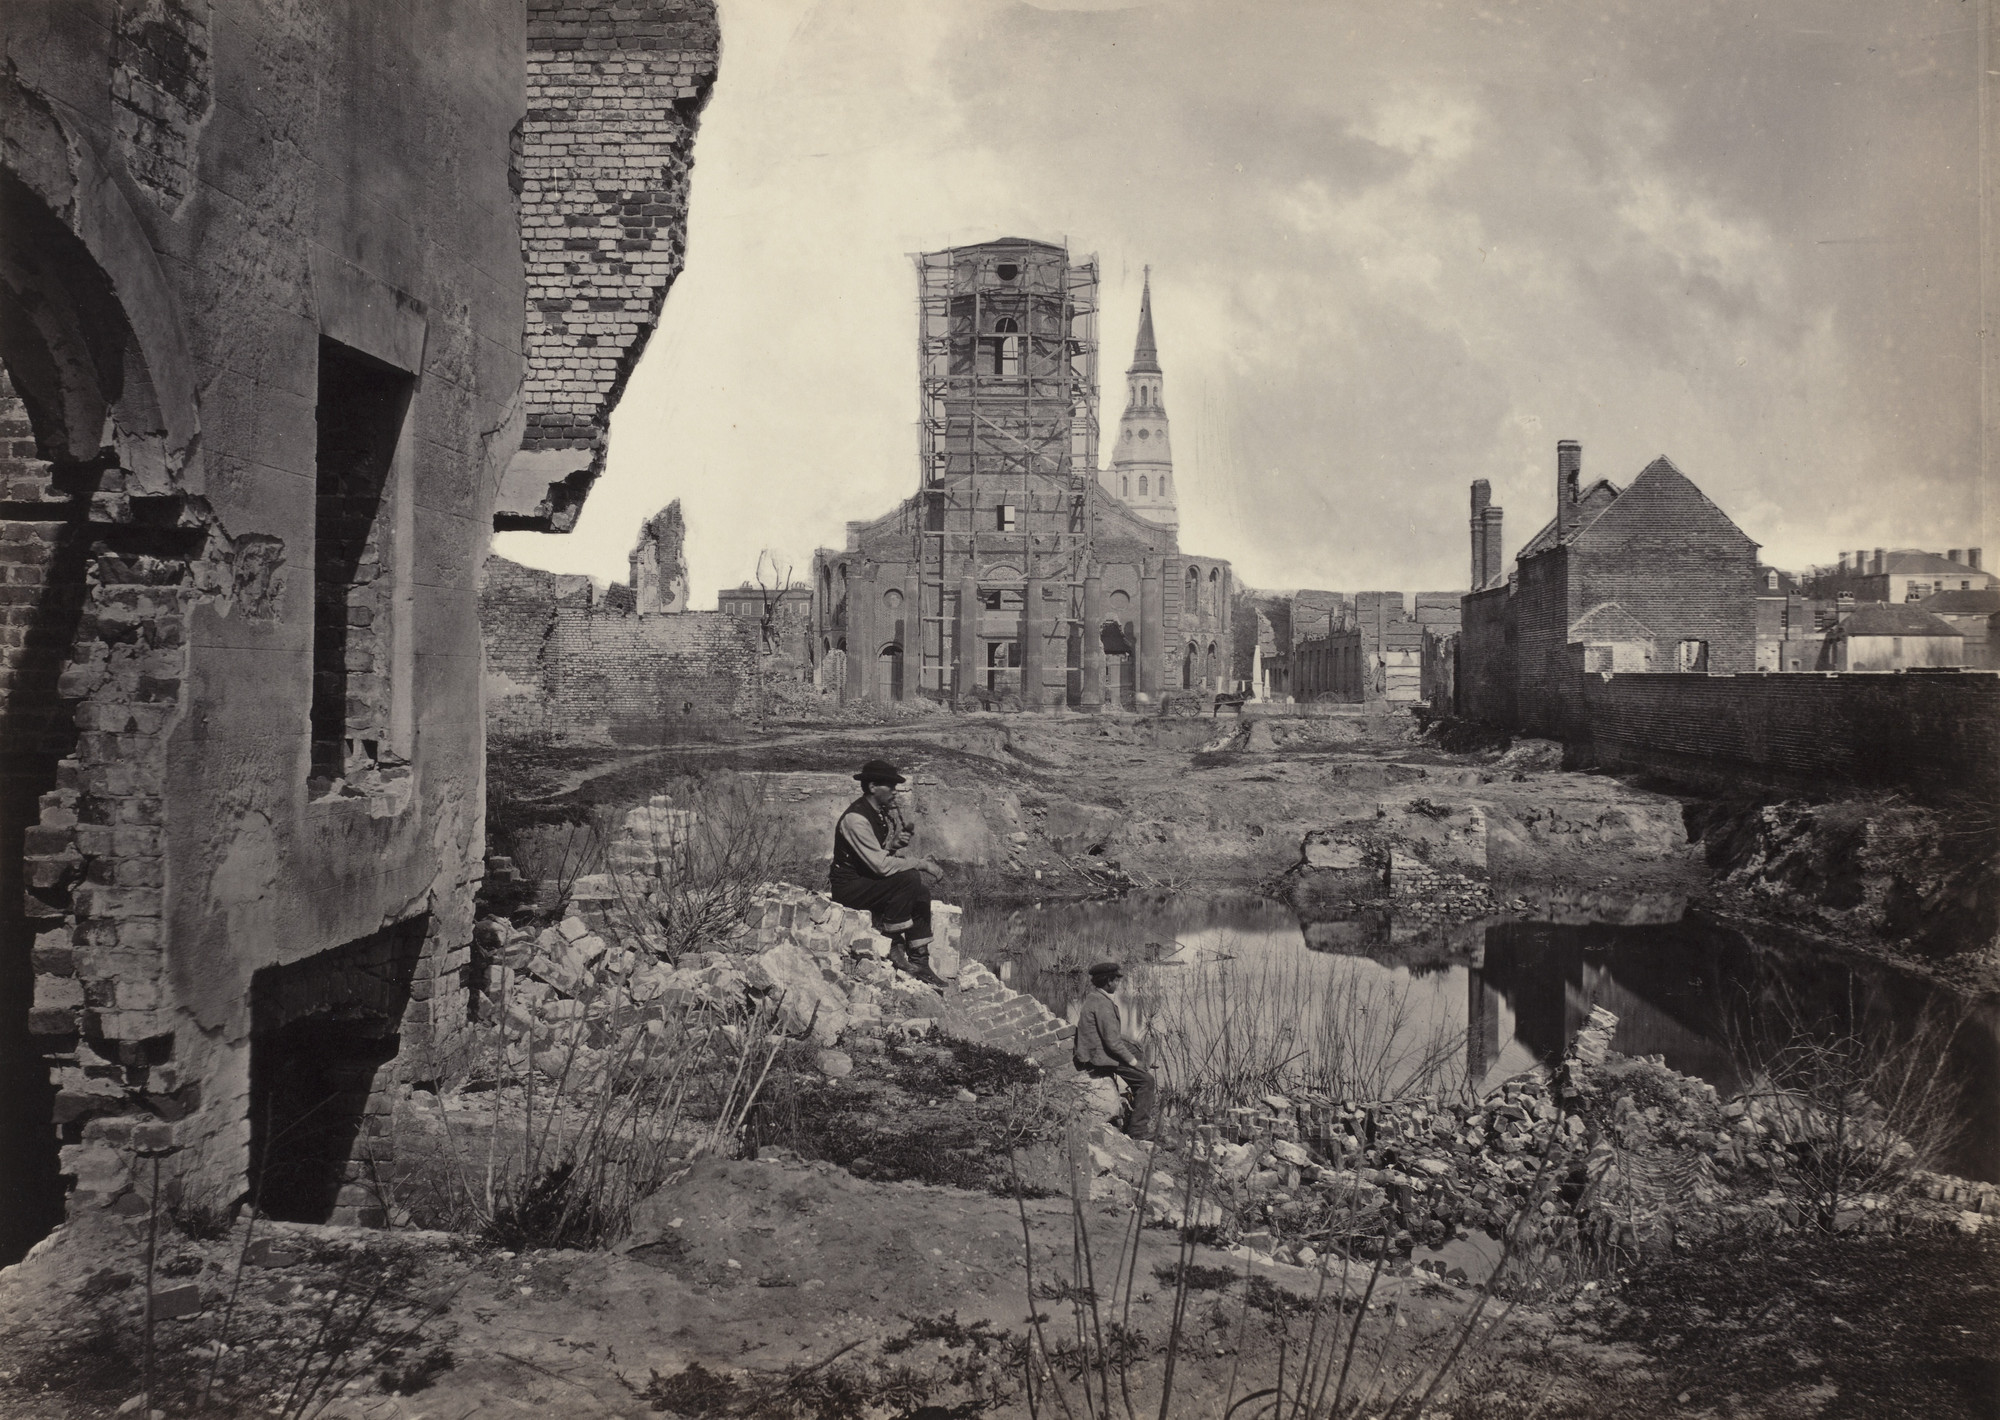 George Barnard. Ruins in Charleston, South Carolina from the album Photographic Views of Sherman's Campaign(1866). 1864-65